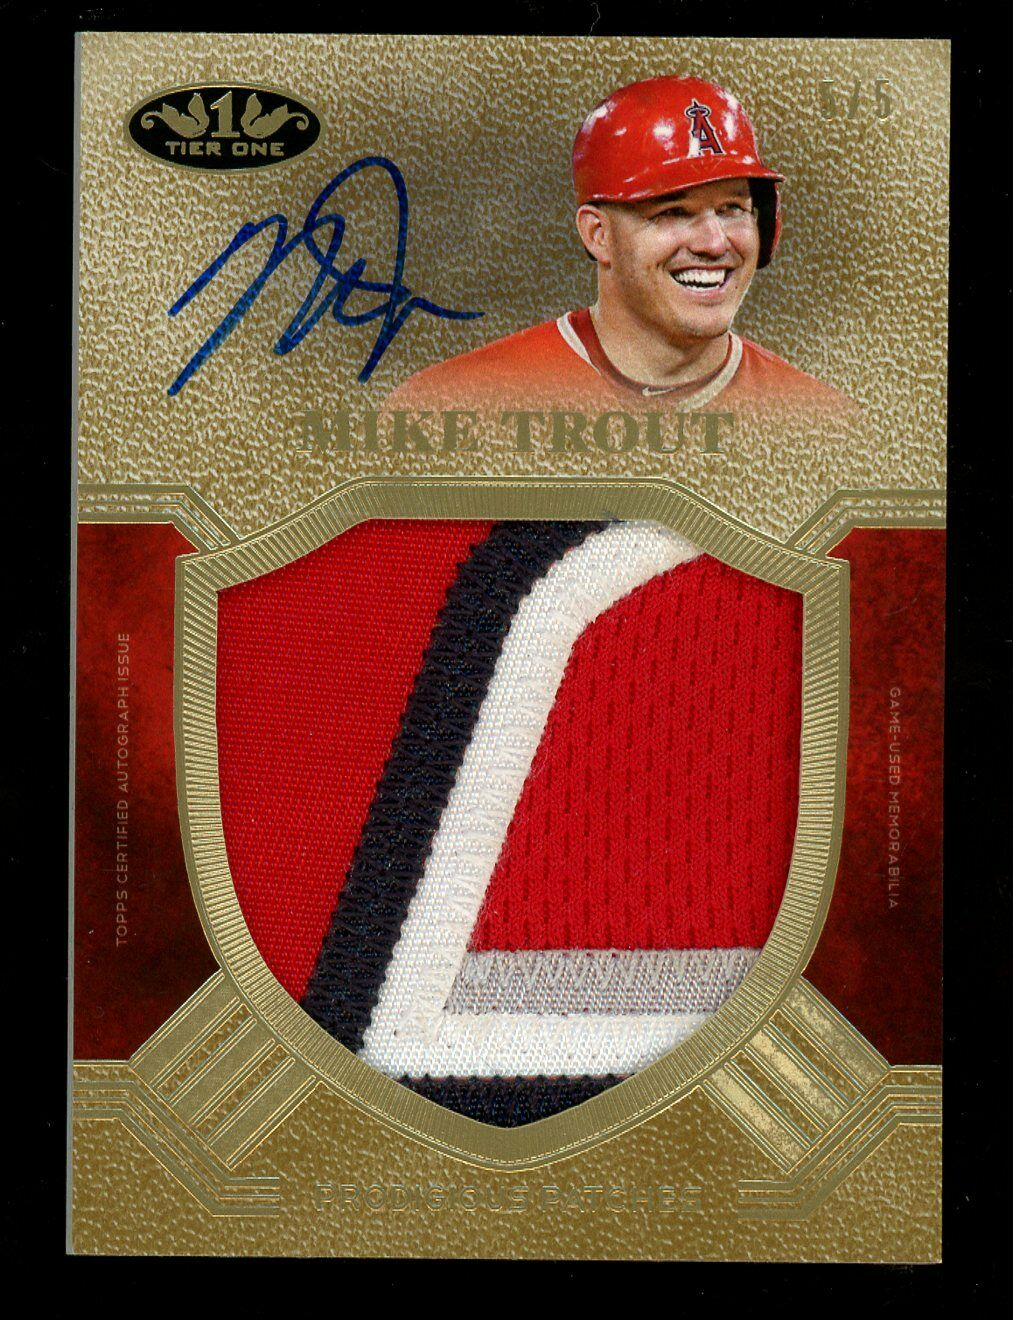 2018 Topps Tier One Prodigious Patches Mike Trout 4-Color Patch AUTO 5/5 Last # - Image 1